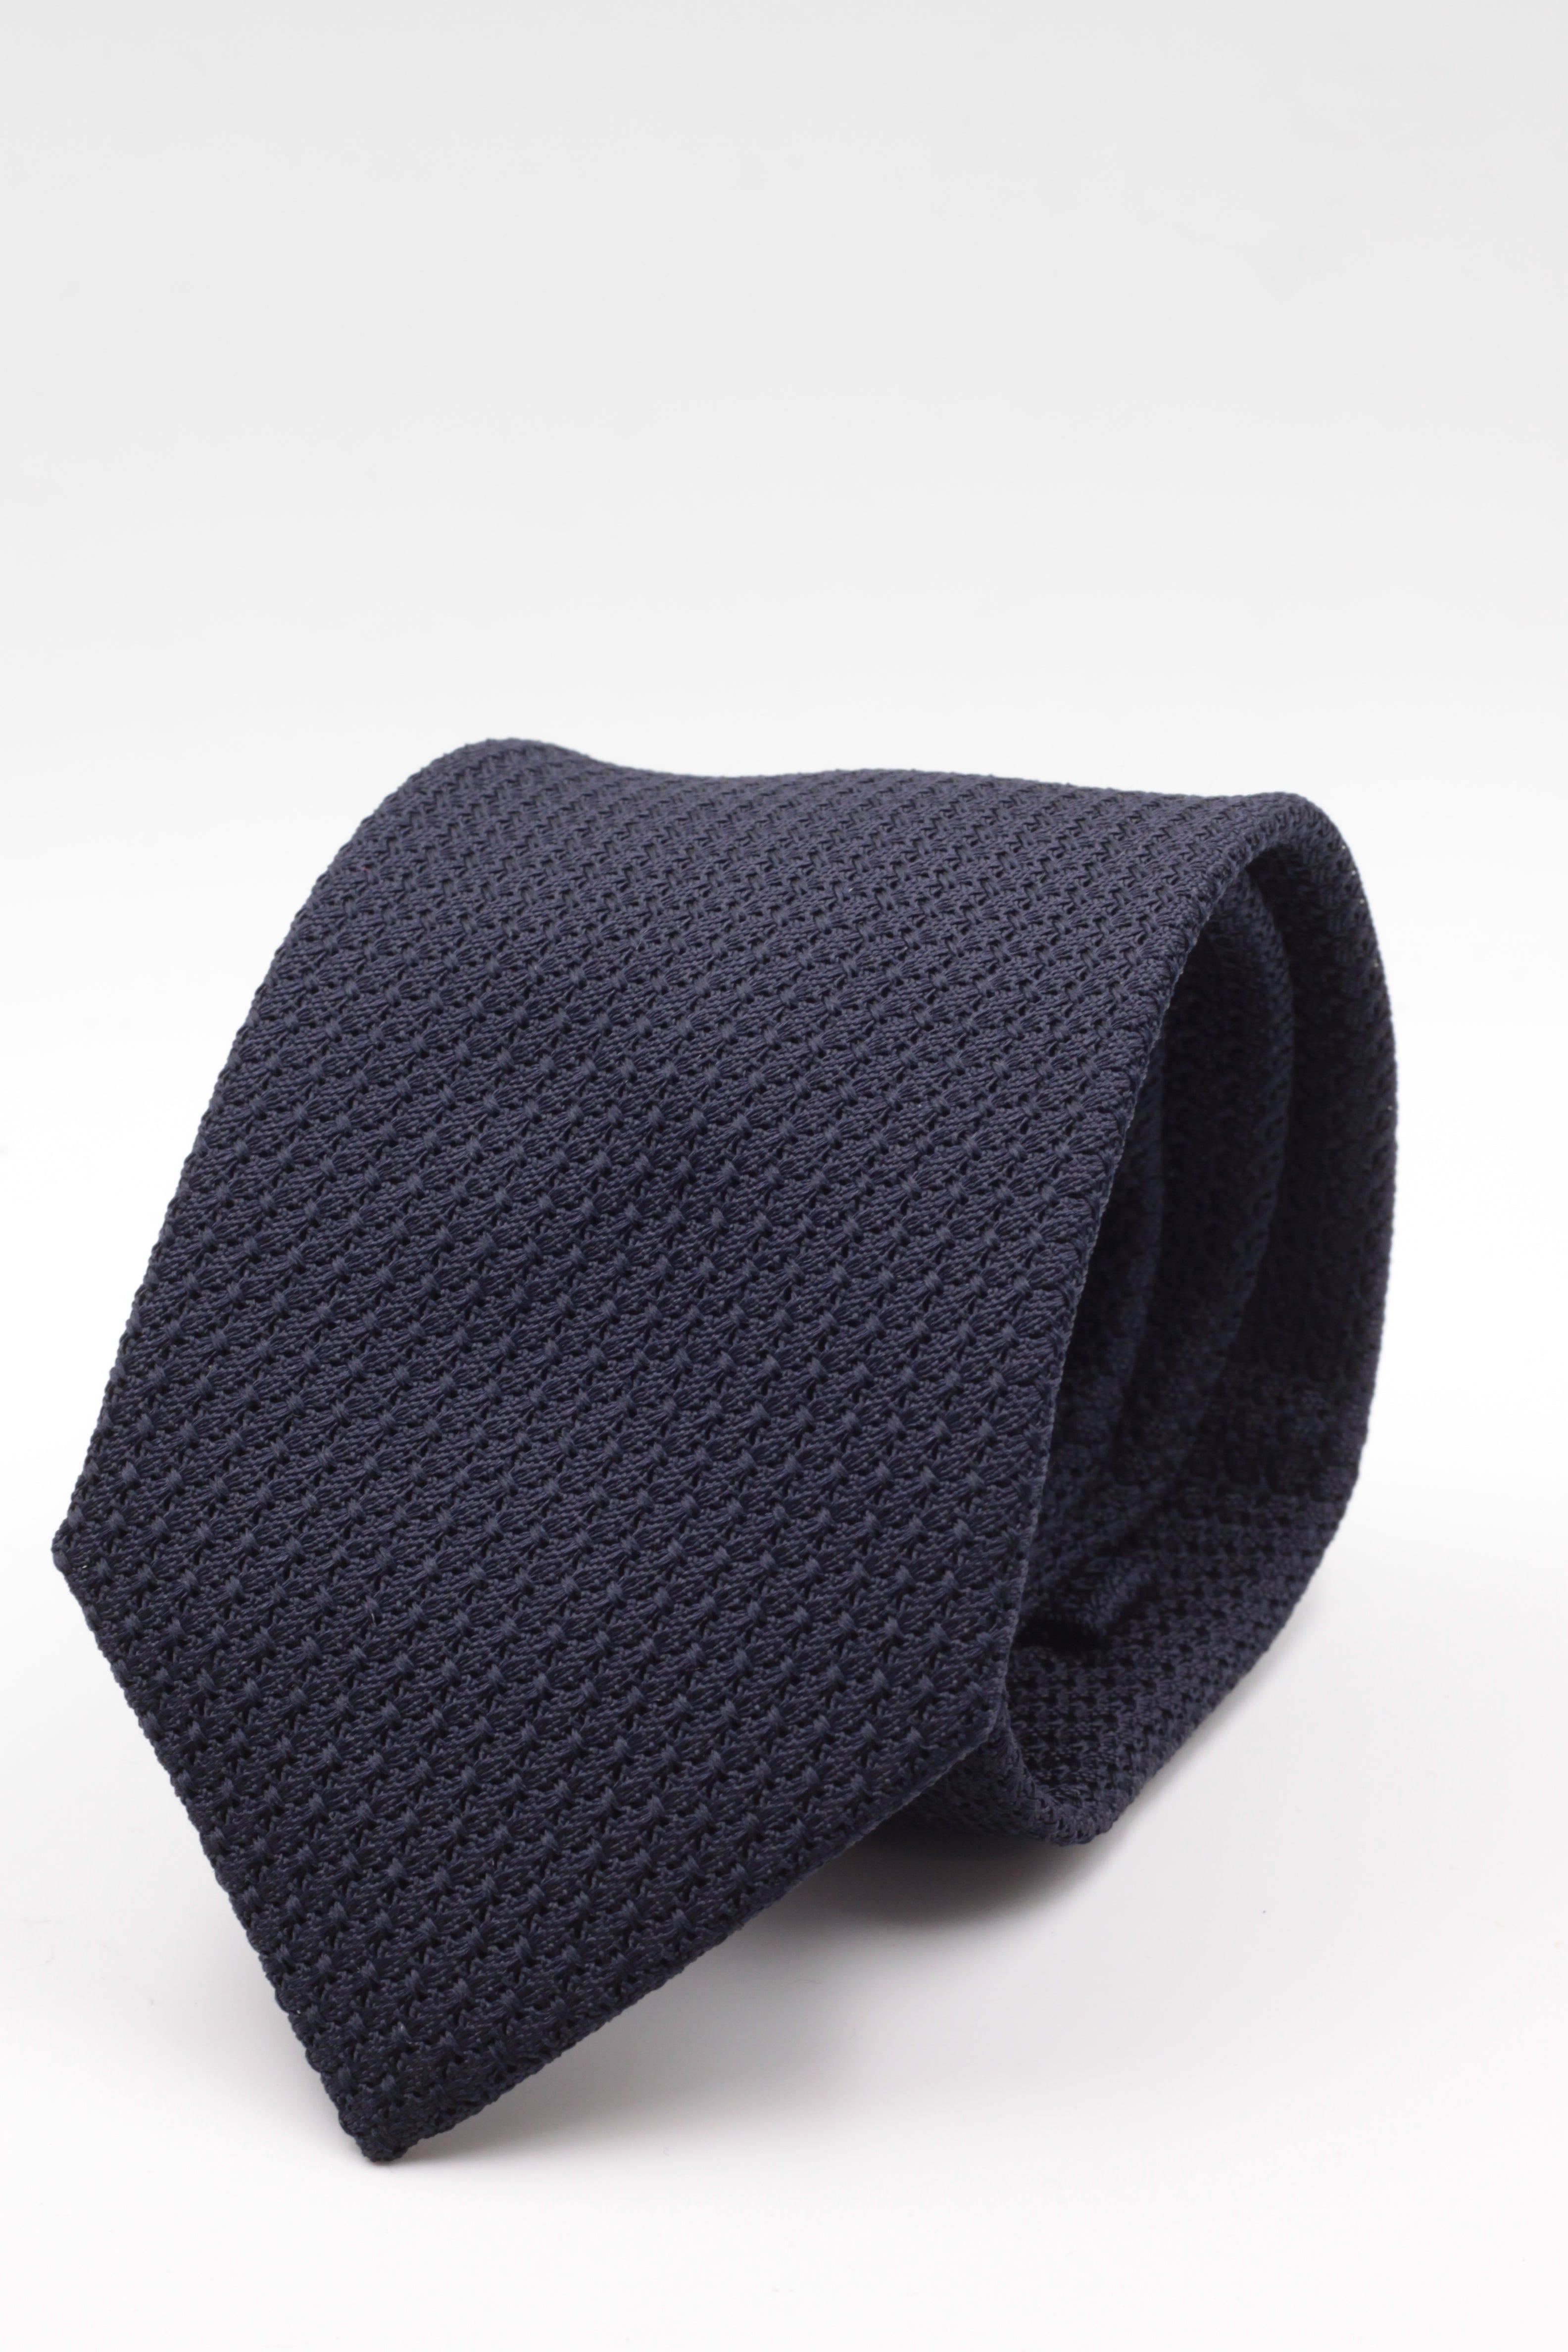 100% Silk Grenadine Garza Grossa Woven in Italy Tipped Midnight blue plain tie Handmade in Italy 8 cm x 150 cm